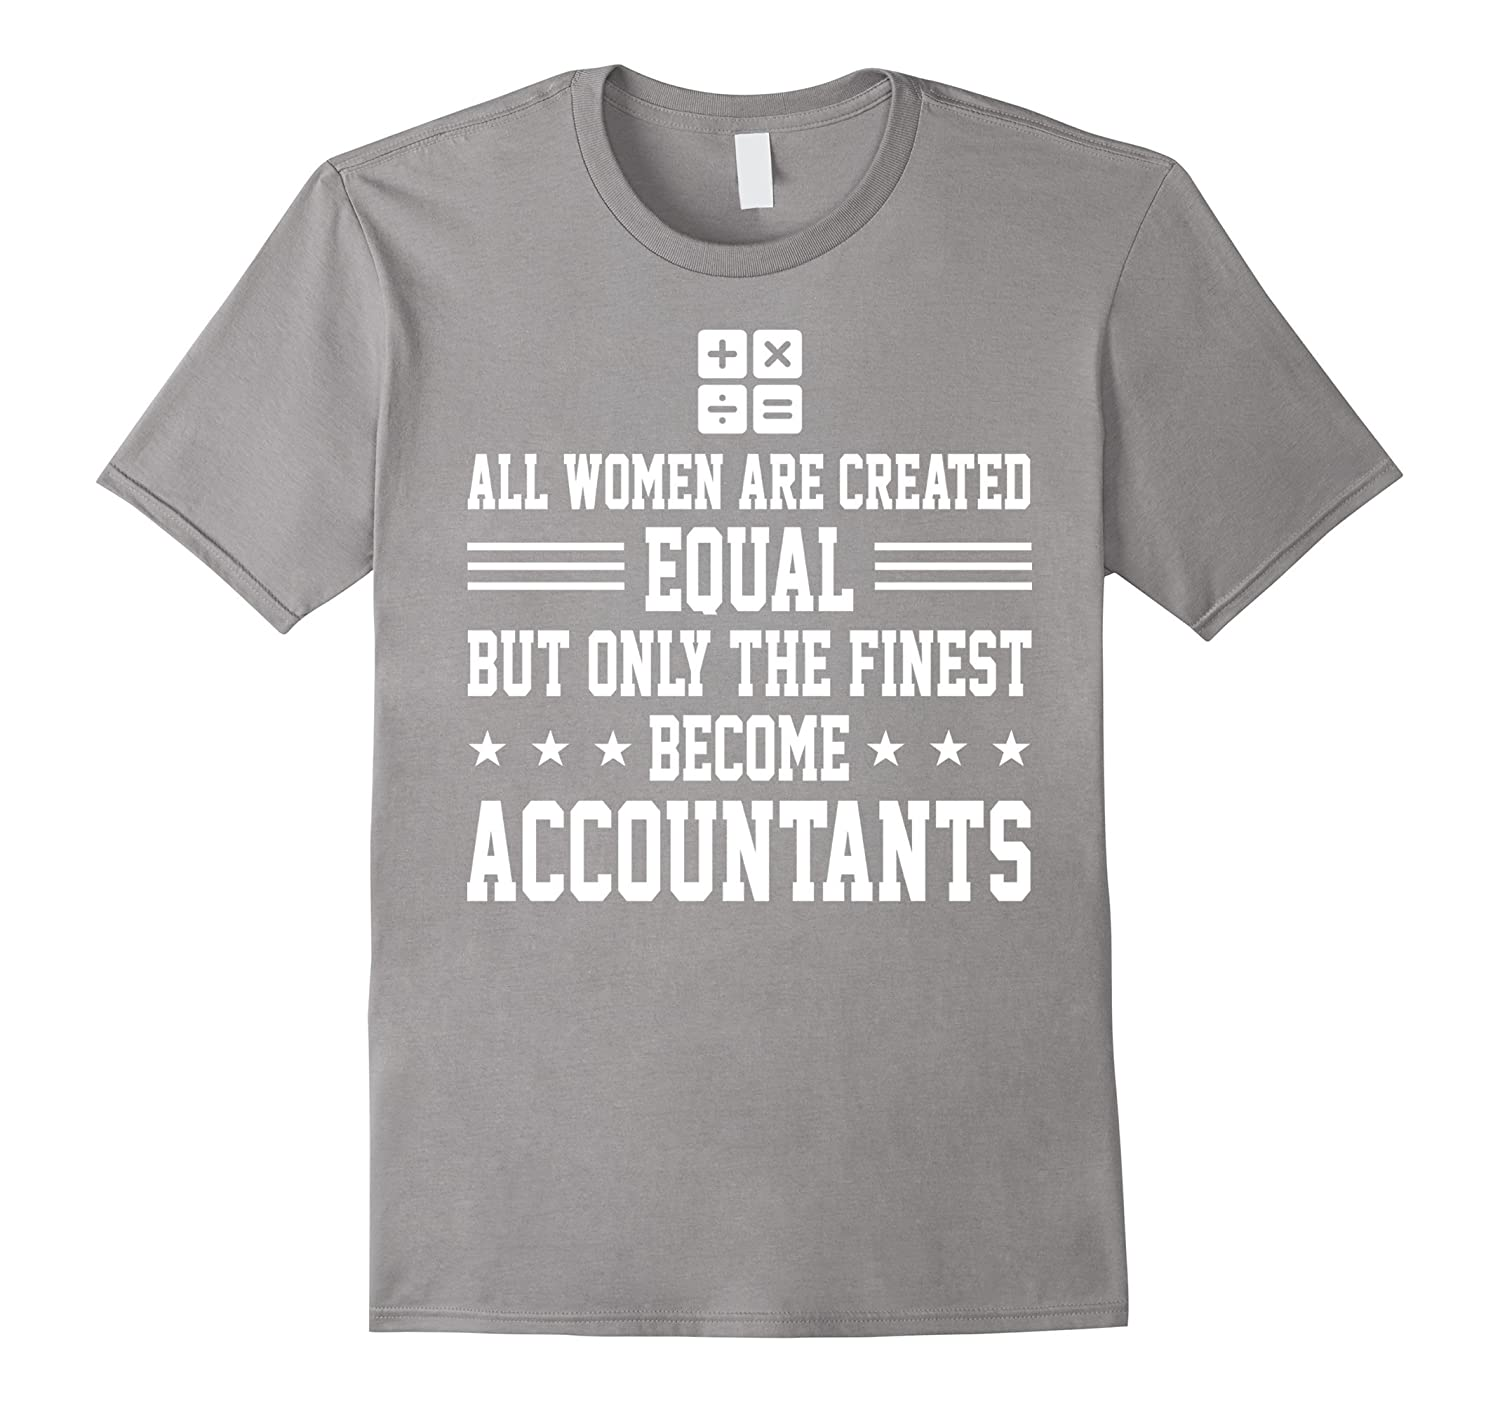 Women Created Equal Finest Become Accountants Shirt, Mother